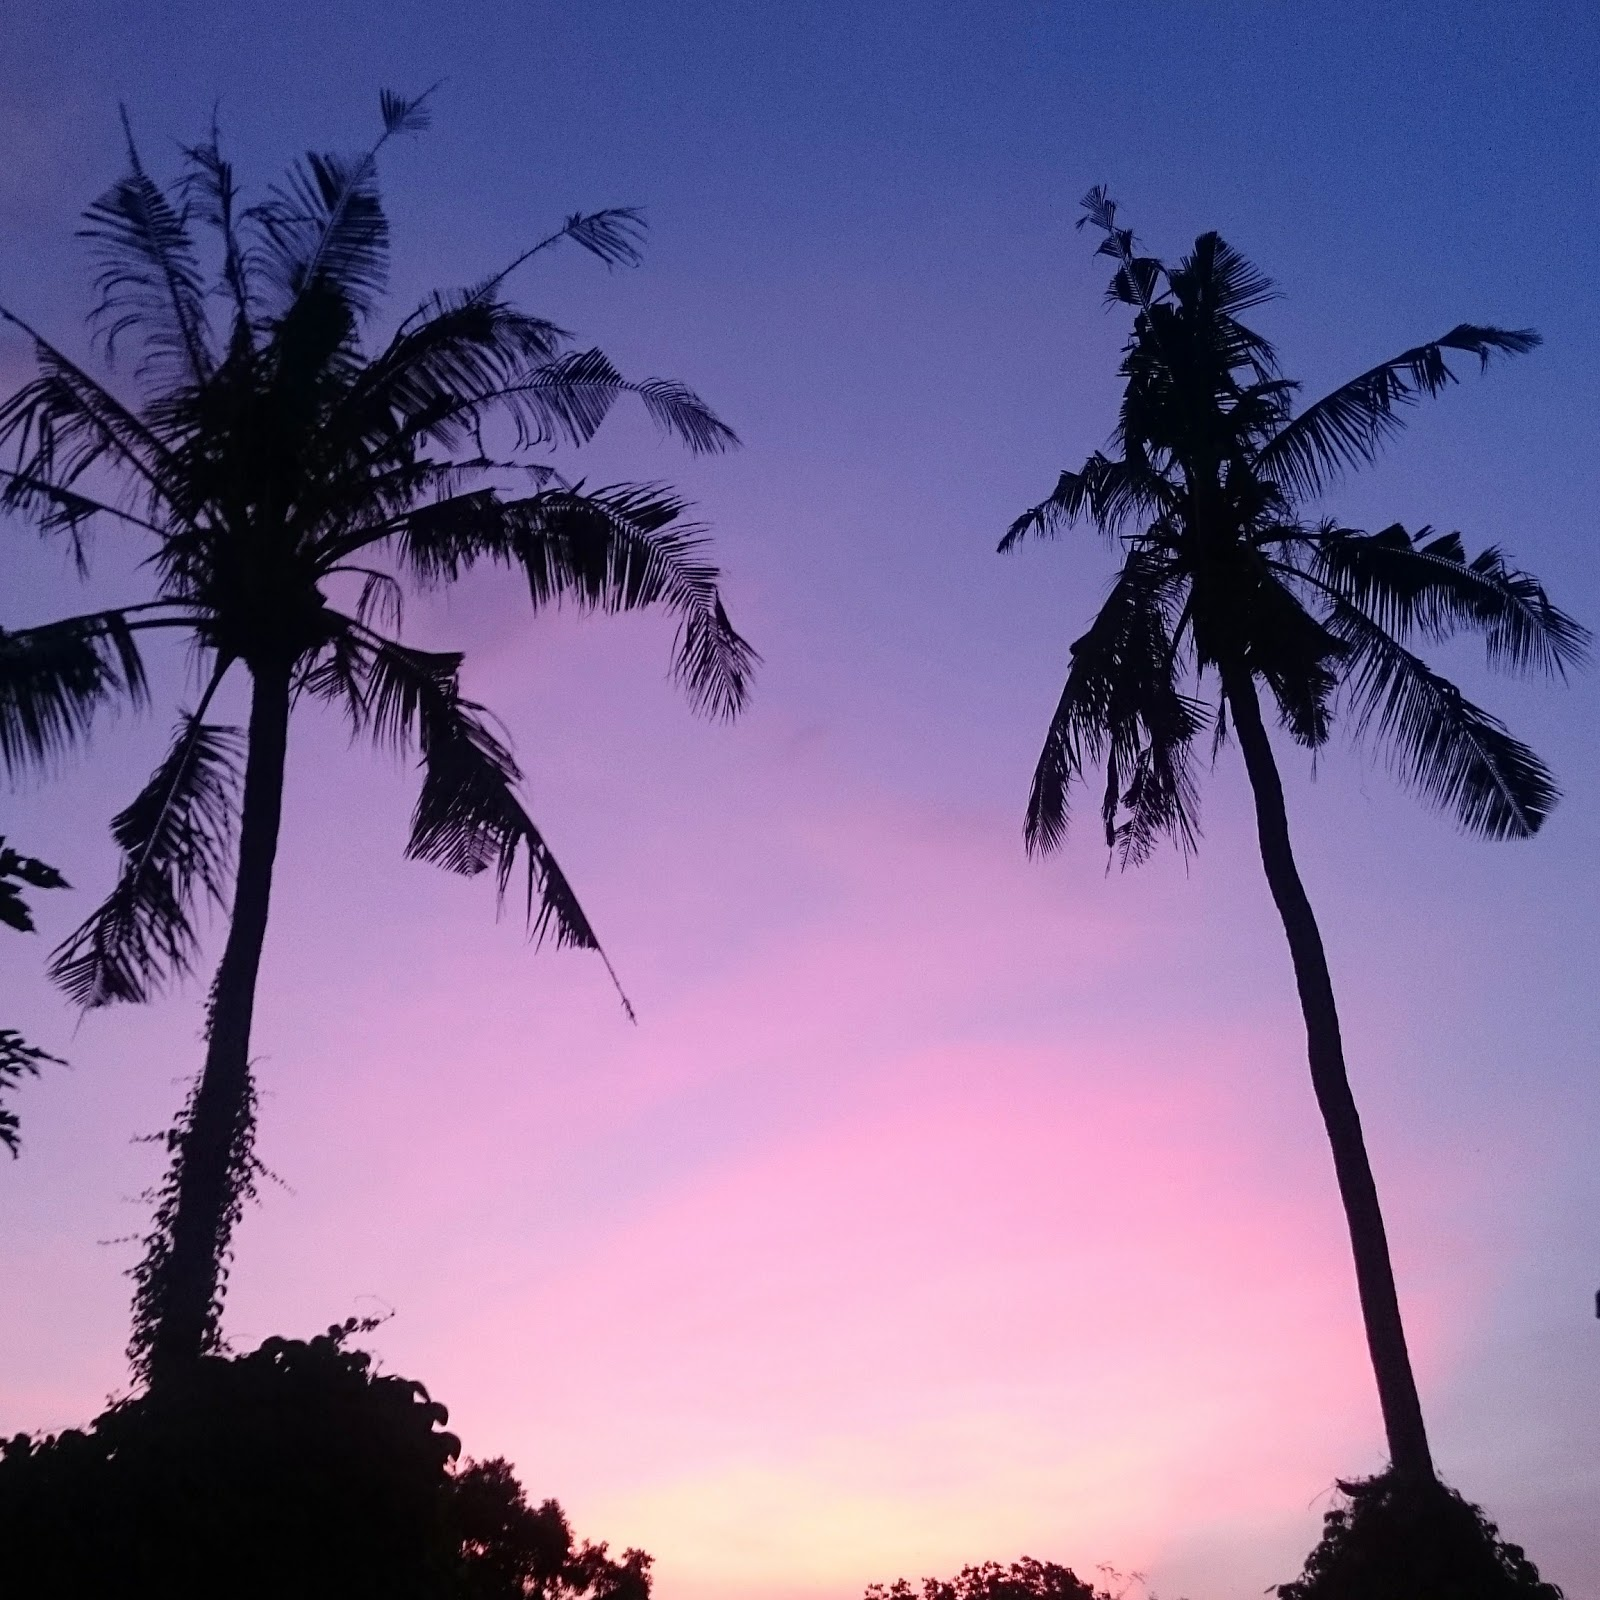 Palm trees at sunset in Bali